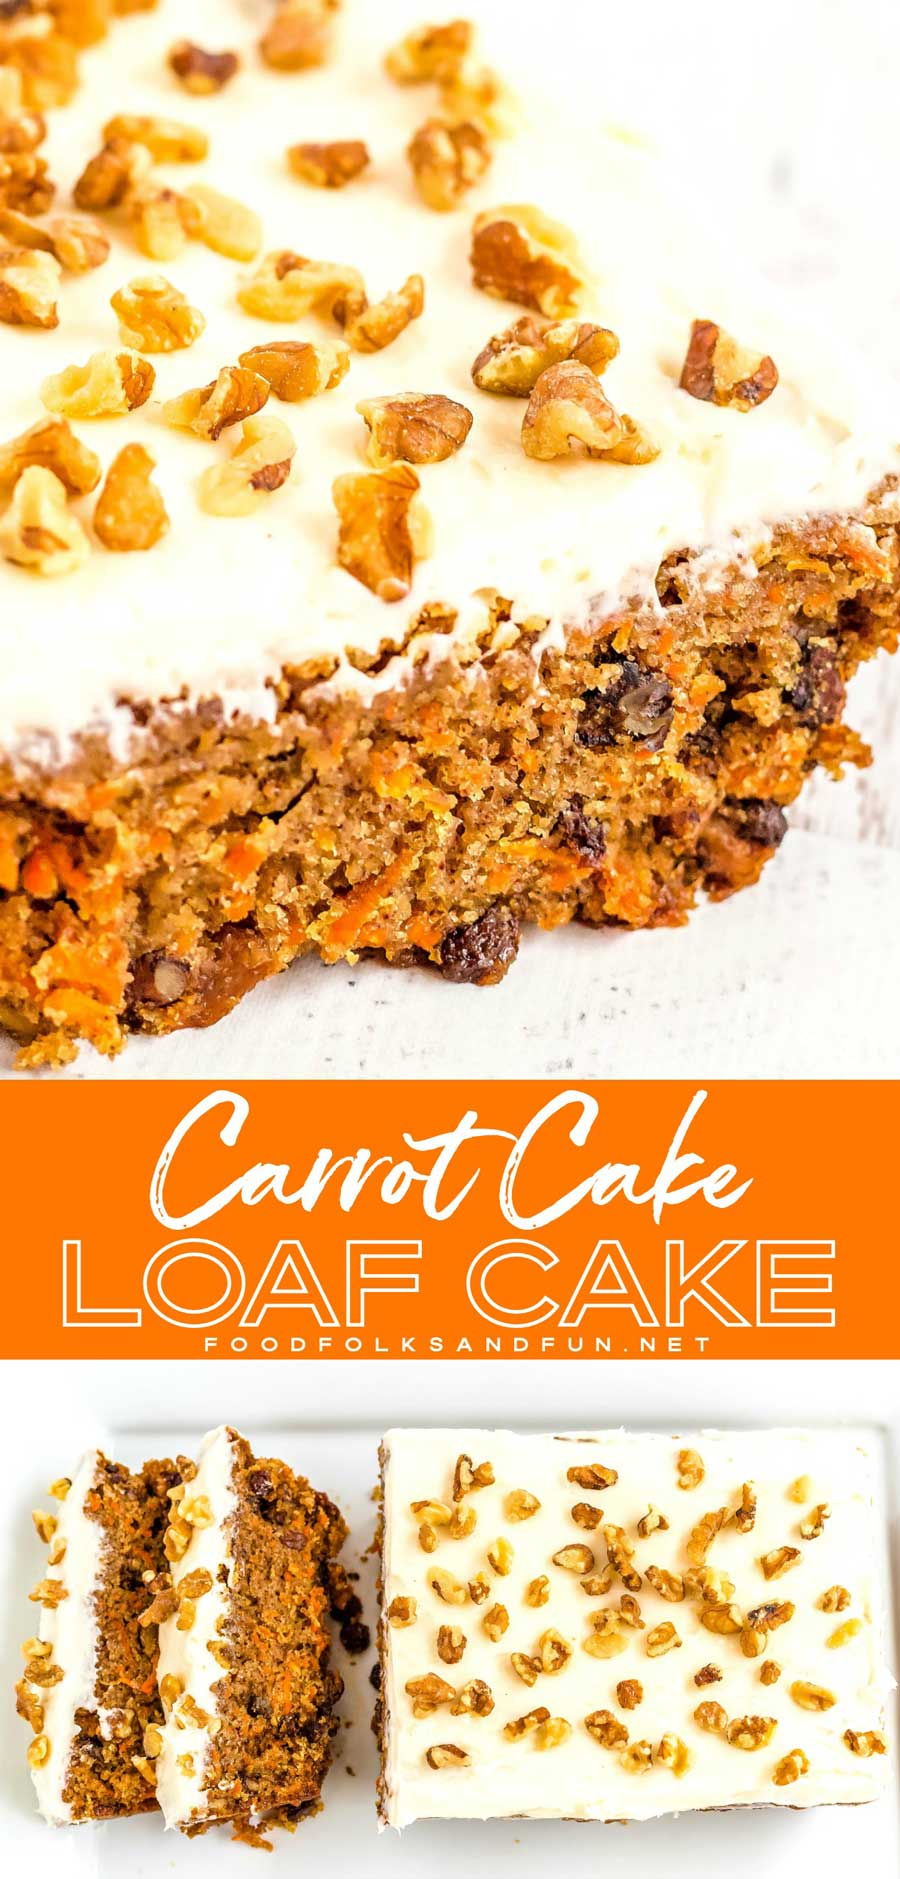 You'll love how easy and delicious this Carrot Cake Loaf recipe is. It's topped with my favorite recipe for fluffy cream cheese frosting! #easyrecipe #easydessert #carrotcake #cake #creamcheese #SpringRecipe #EasterRecipe #EasterDessert #SpringDessert #foodfolksandfun via @foodfolksandfun